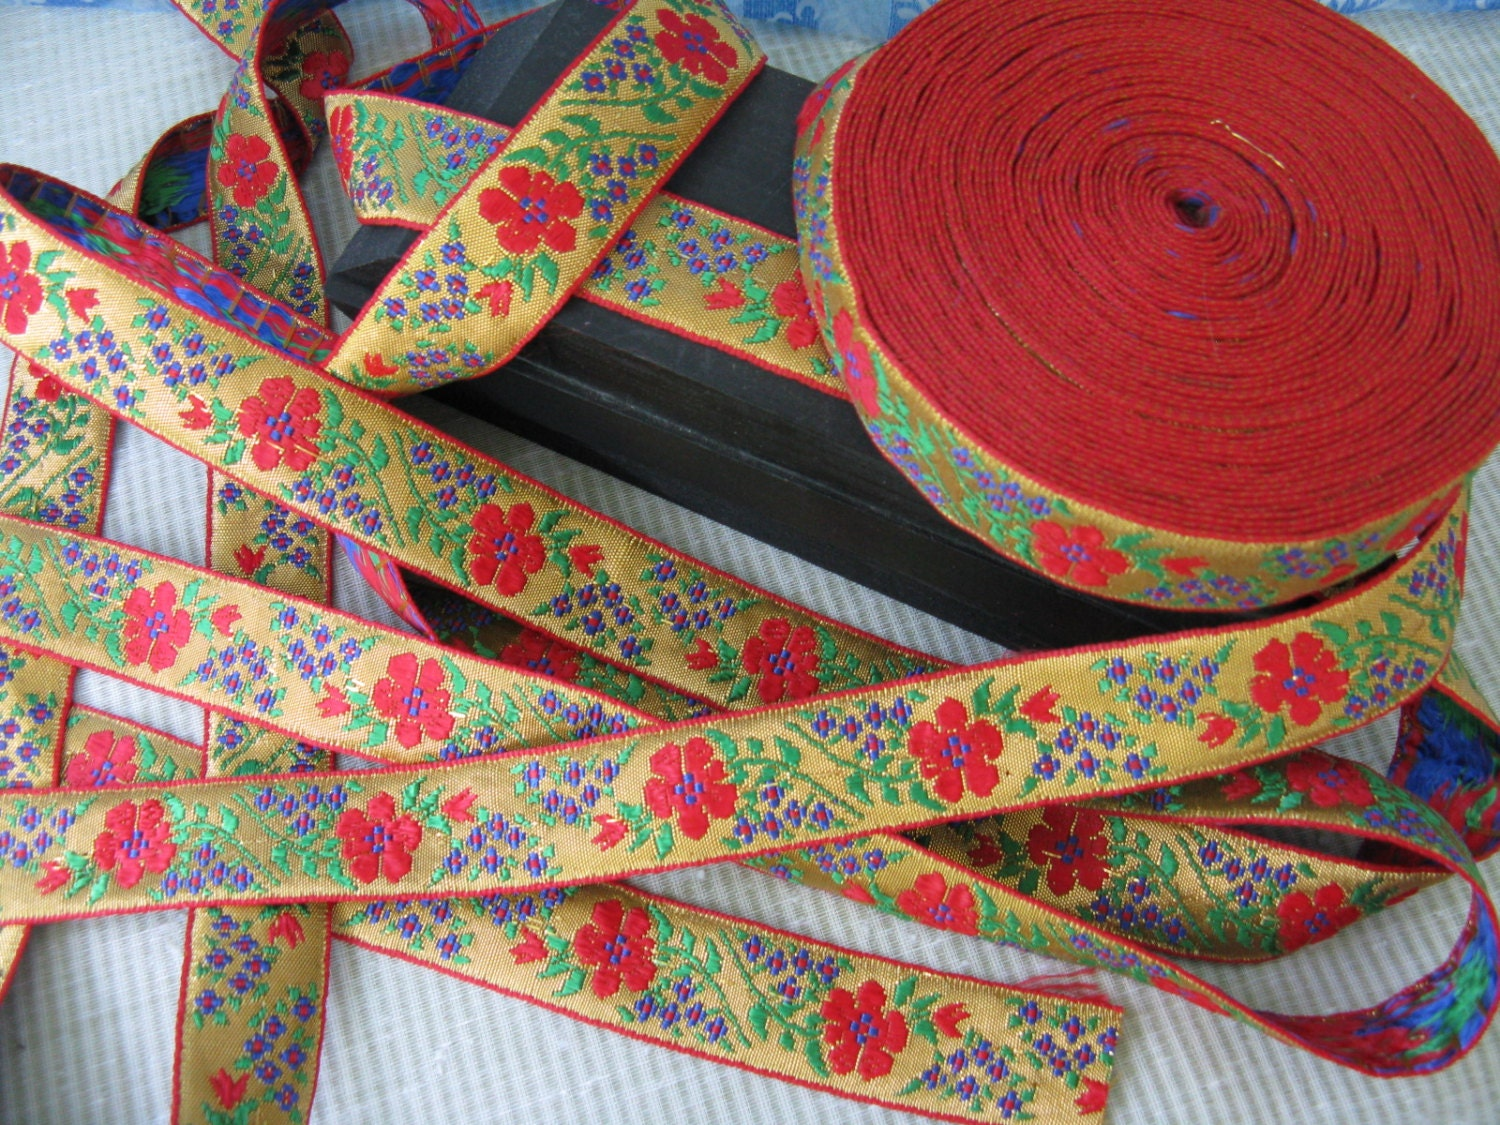 Splendid Gold Woven Jacquard Ribbon With Red Roses And Tiny